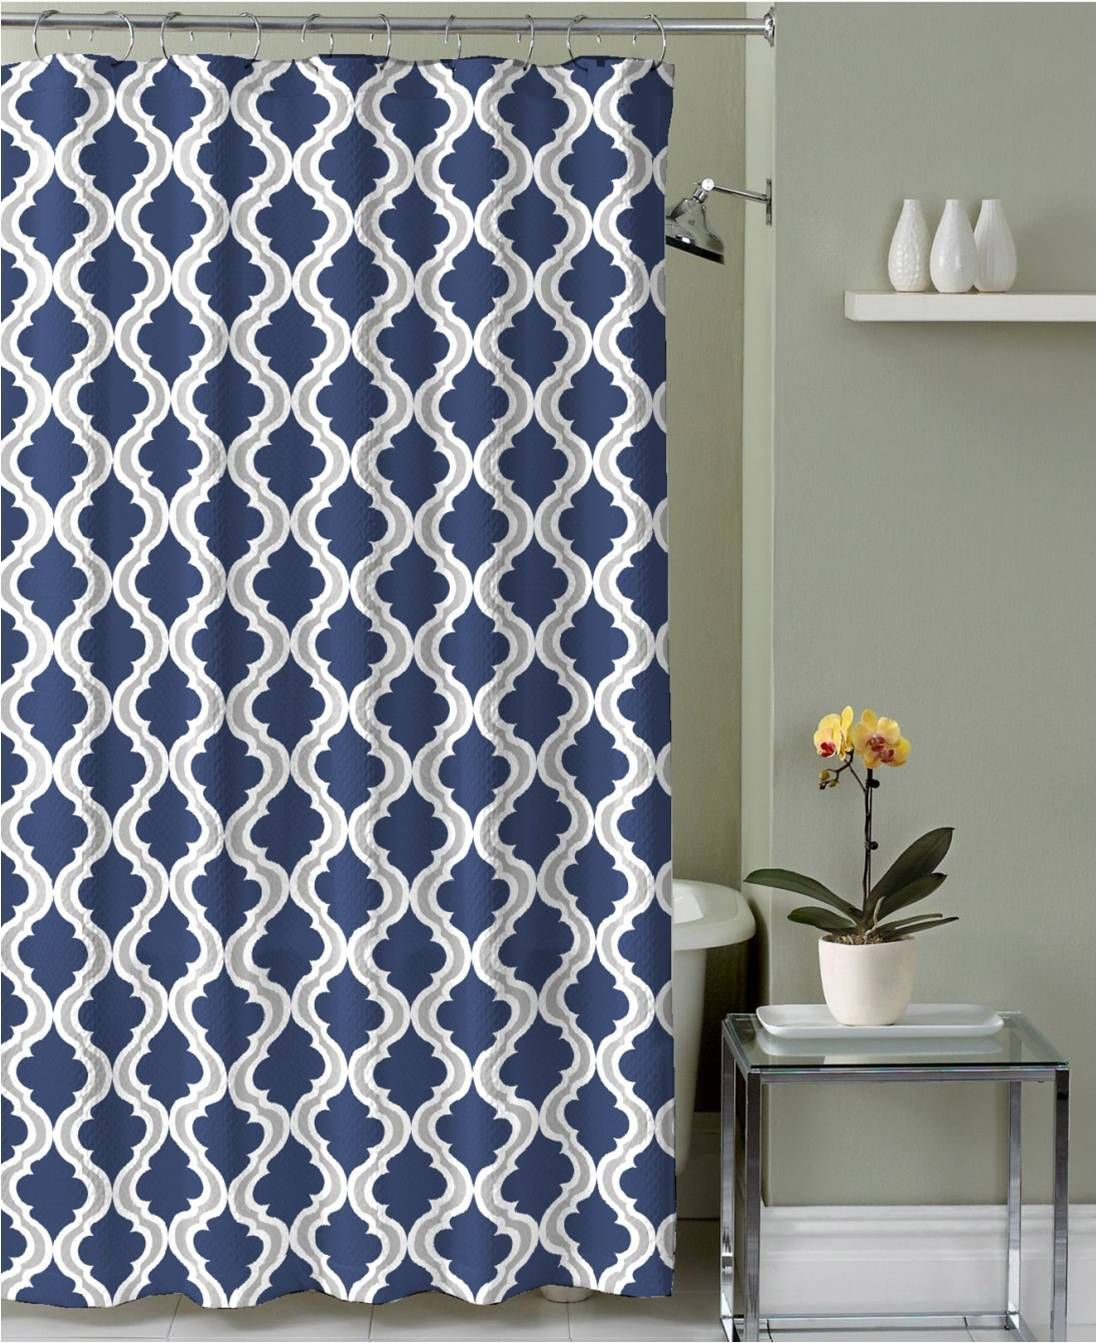 Royal Bath Anguila Electric Eel Canvas Fabric Shower Curtain 70 X 72 In 2021 Blue Shower Curtains Gray Shower Curtains Blue White Shower Curtain [ 1343 x 1097 Pixel ]